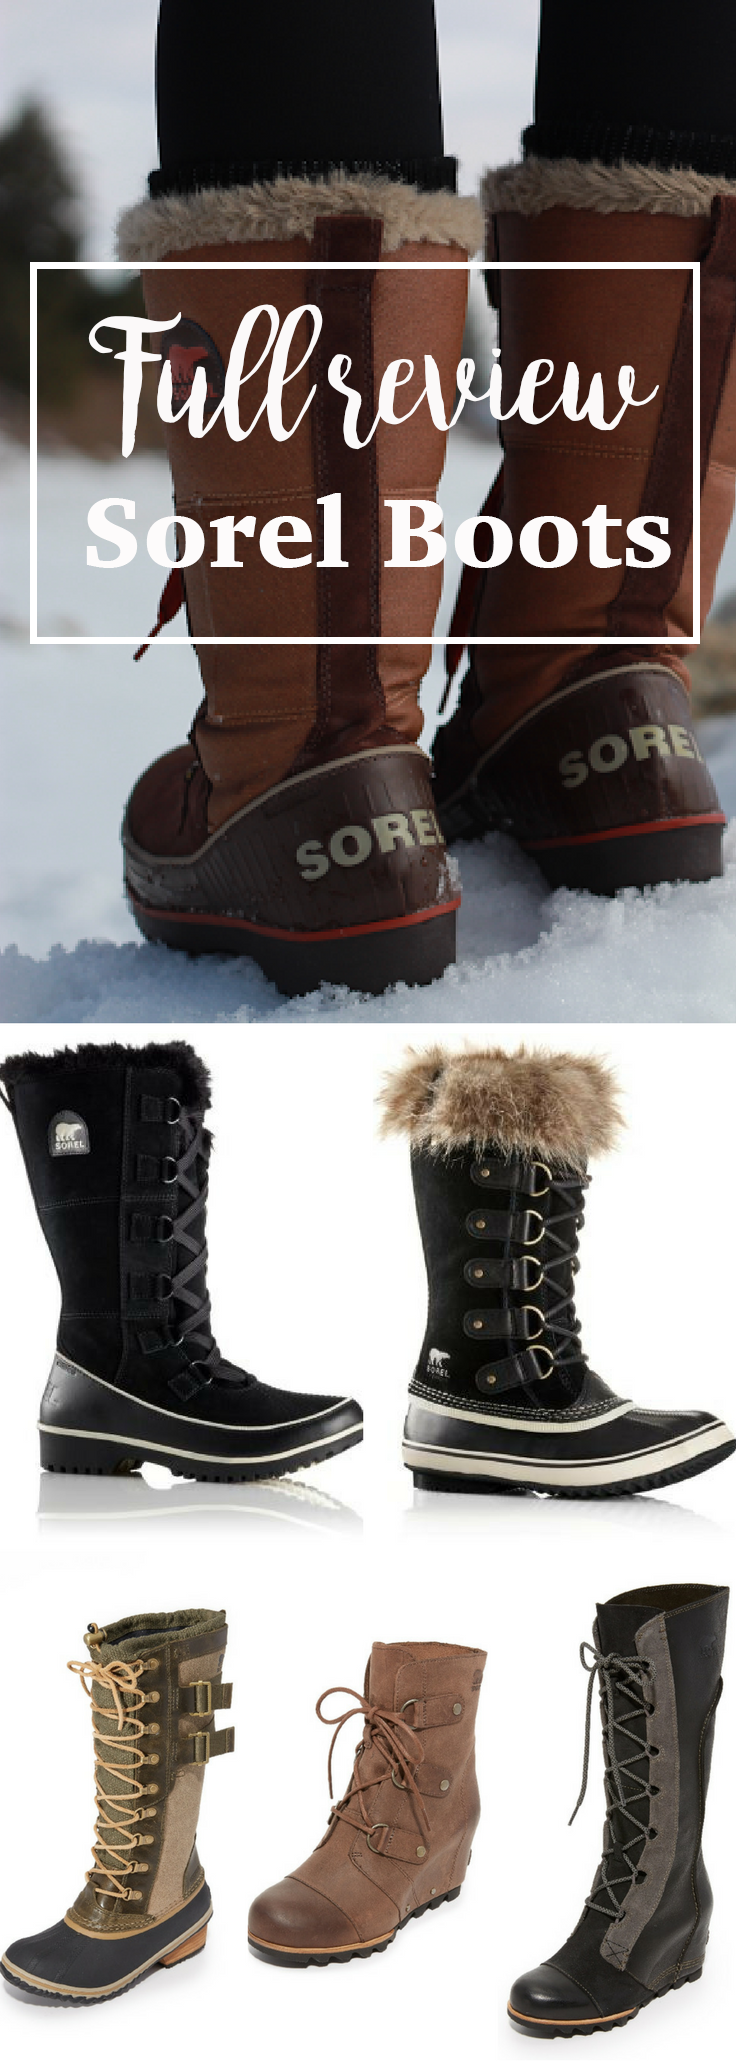 I have two pairs of Sorel Boots and I DON'T live in the snow. I have had them for more than 2 years. I am sharing IF they are worth their money if you don't live in the snow.